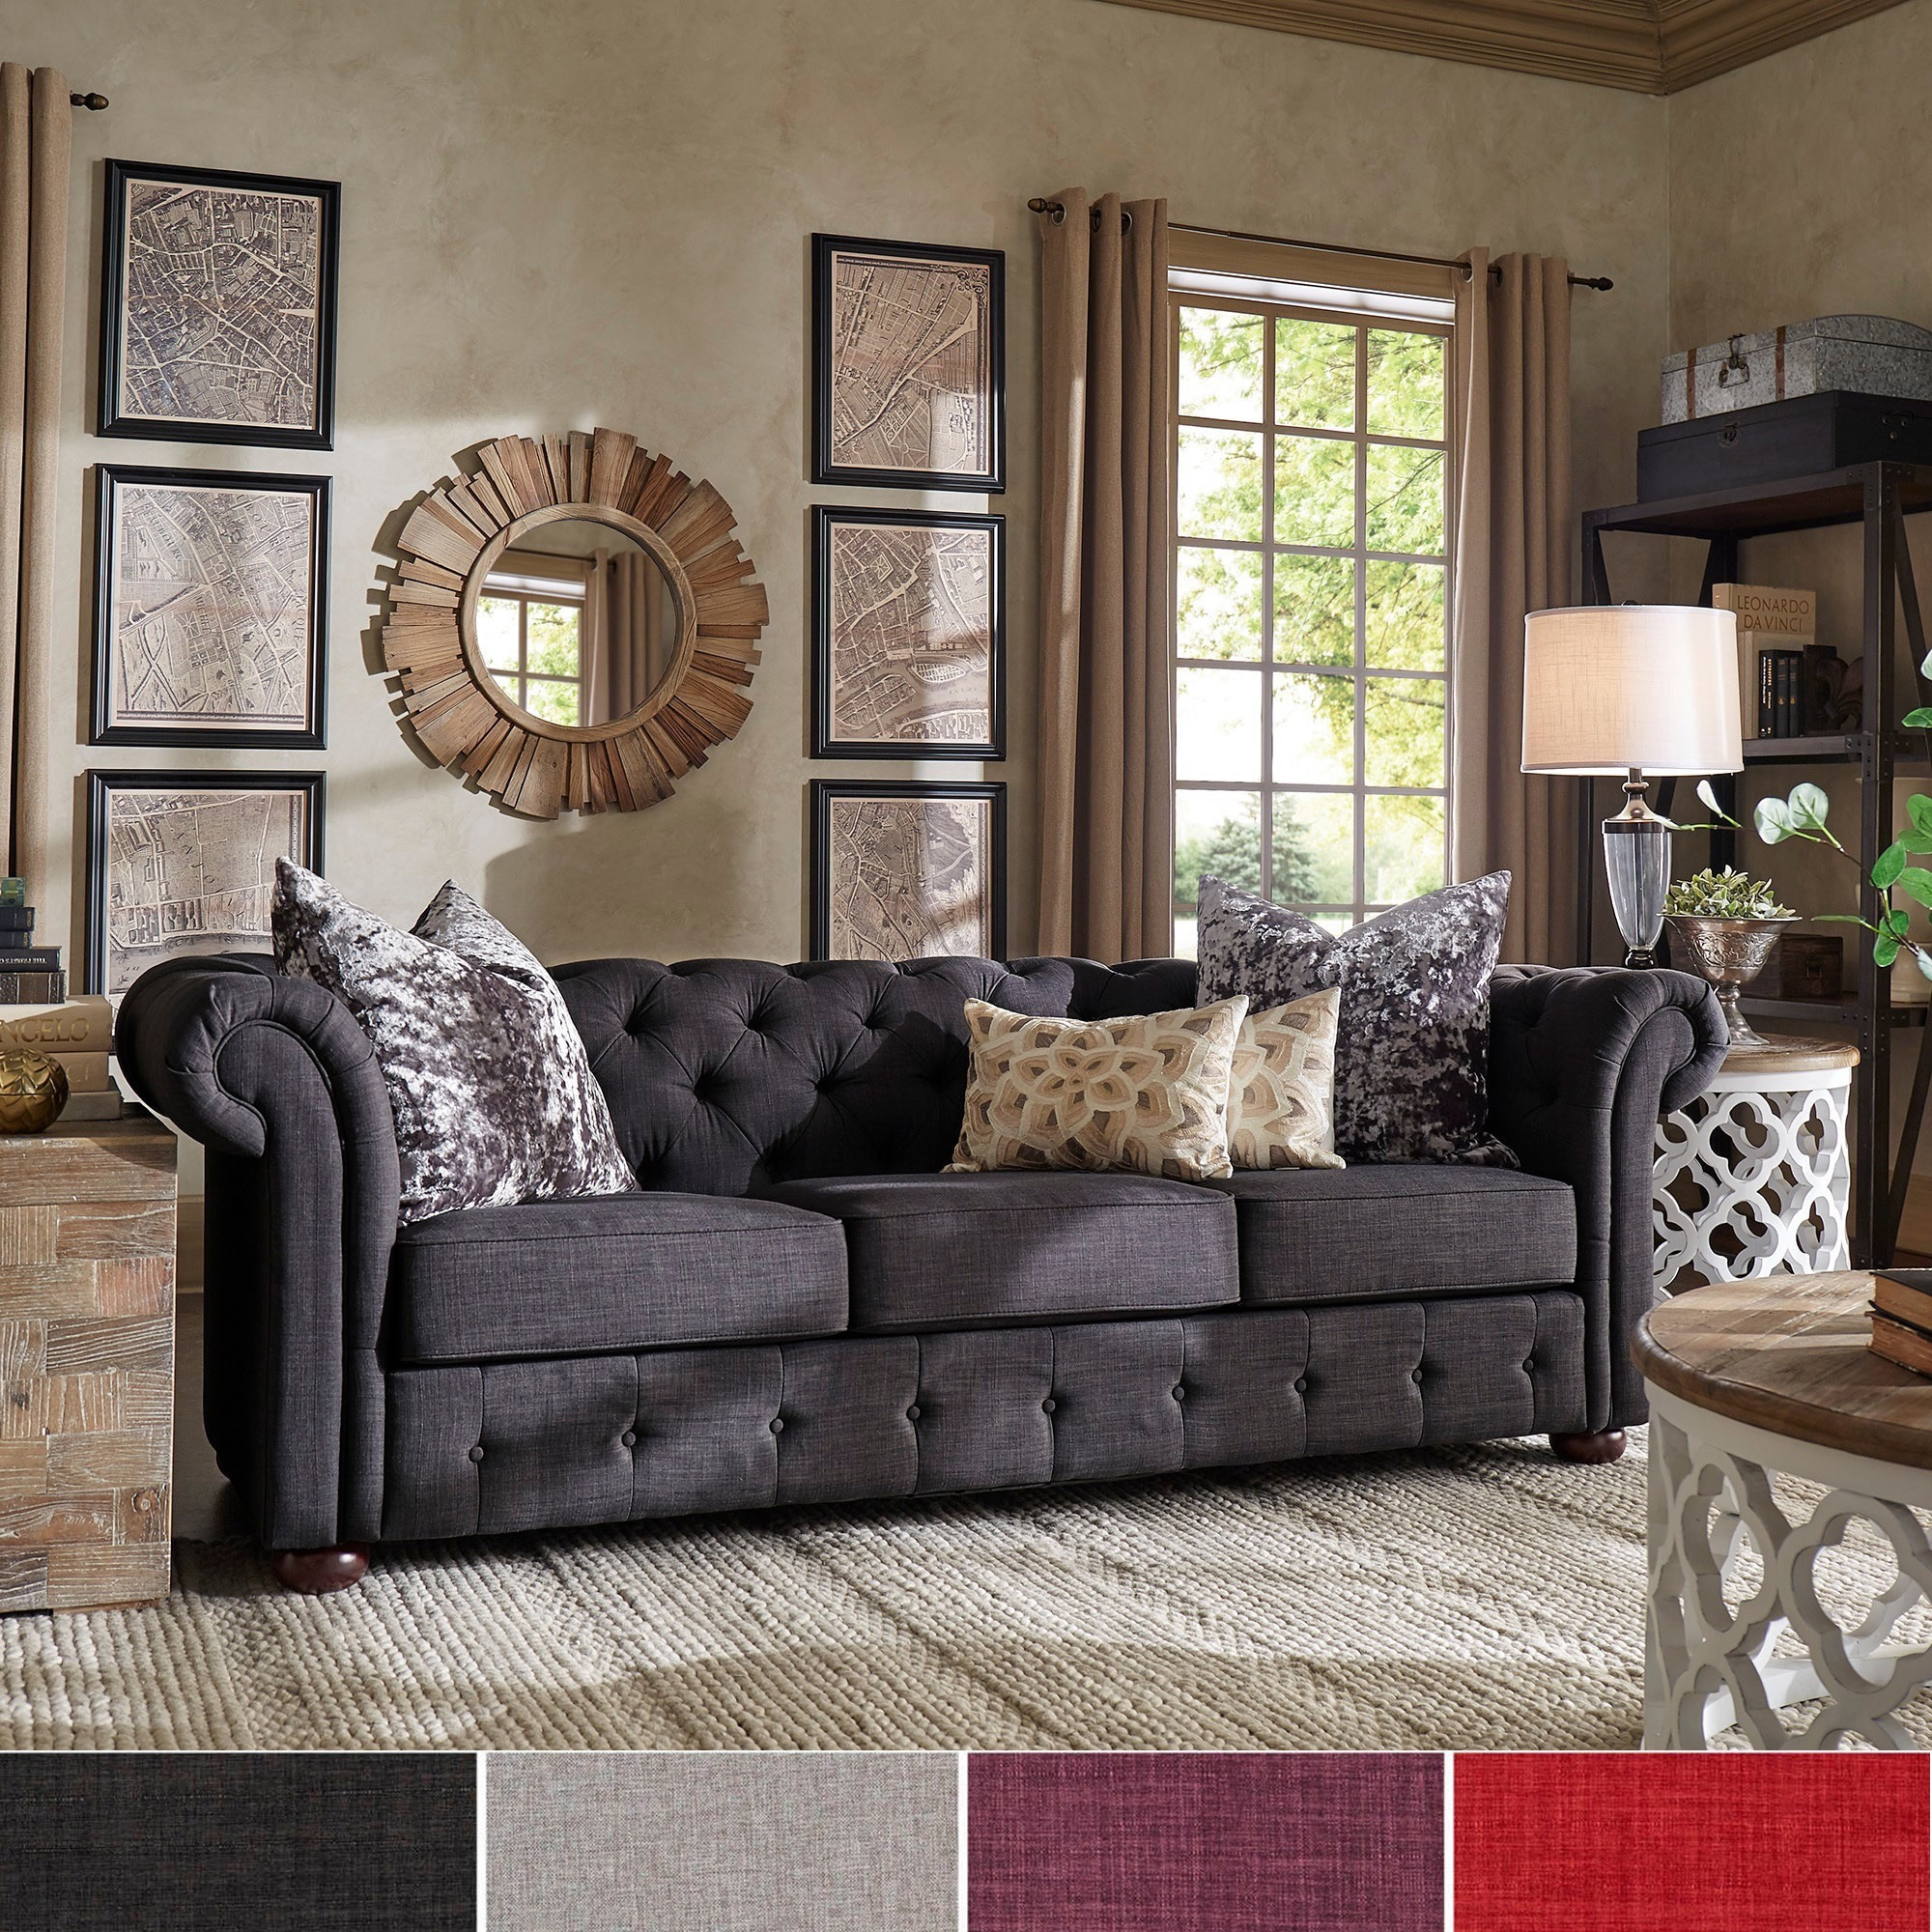 Shop Knightsbridge Tufted Scroll Arm Chesterfield Sofa by iNSPIRE Q     Shop Knightsbridge Tufted Scroll Arm Chesterfield Sofa by iNSPIRE Q Artisan    On Sale   Free Shipping Today   Overstock com   9242312